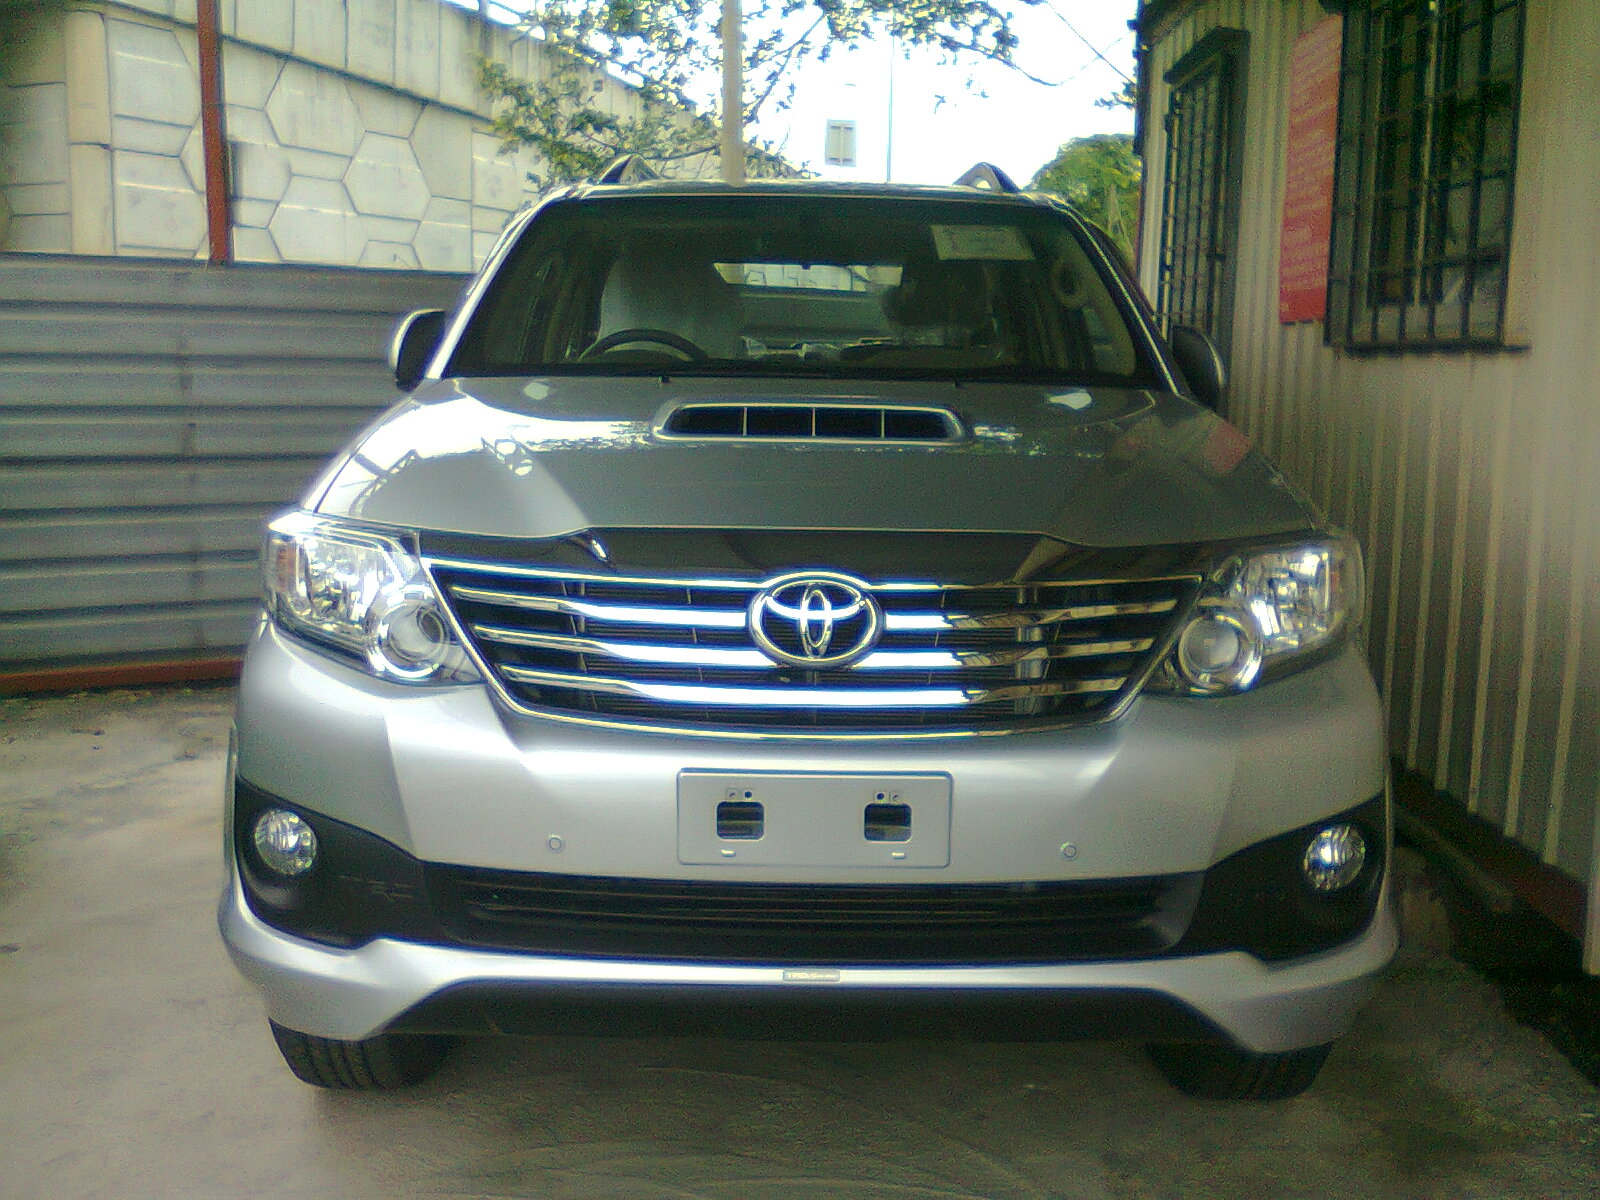 brand new toyota altis price grand avanza kredit 2013 fortuner 2.5 & 2.7 | toyotanewcars